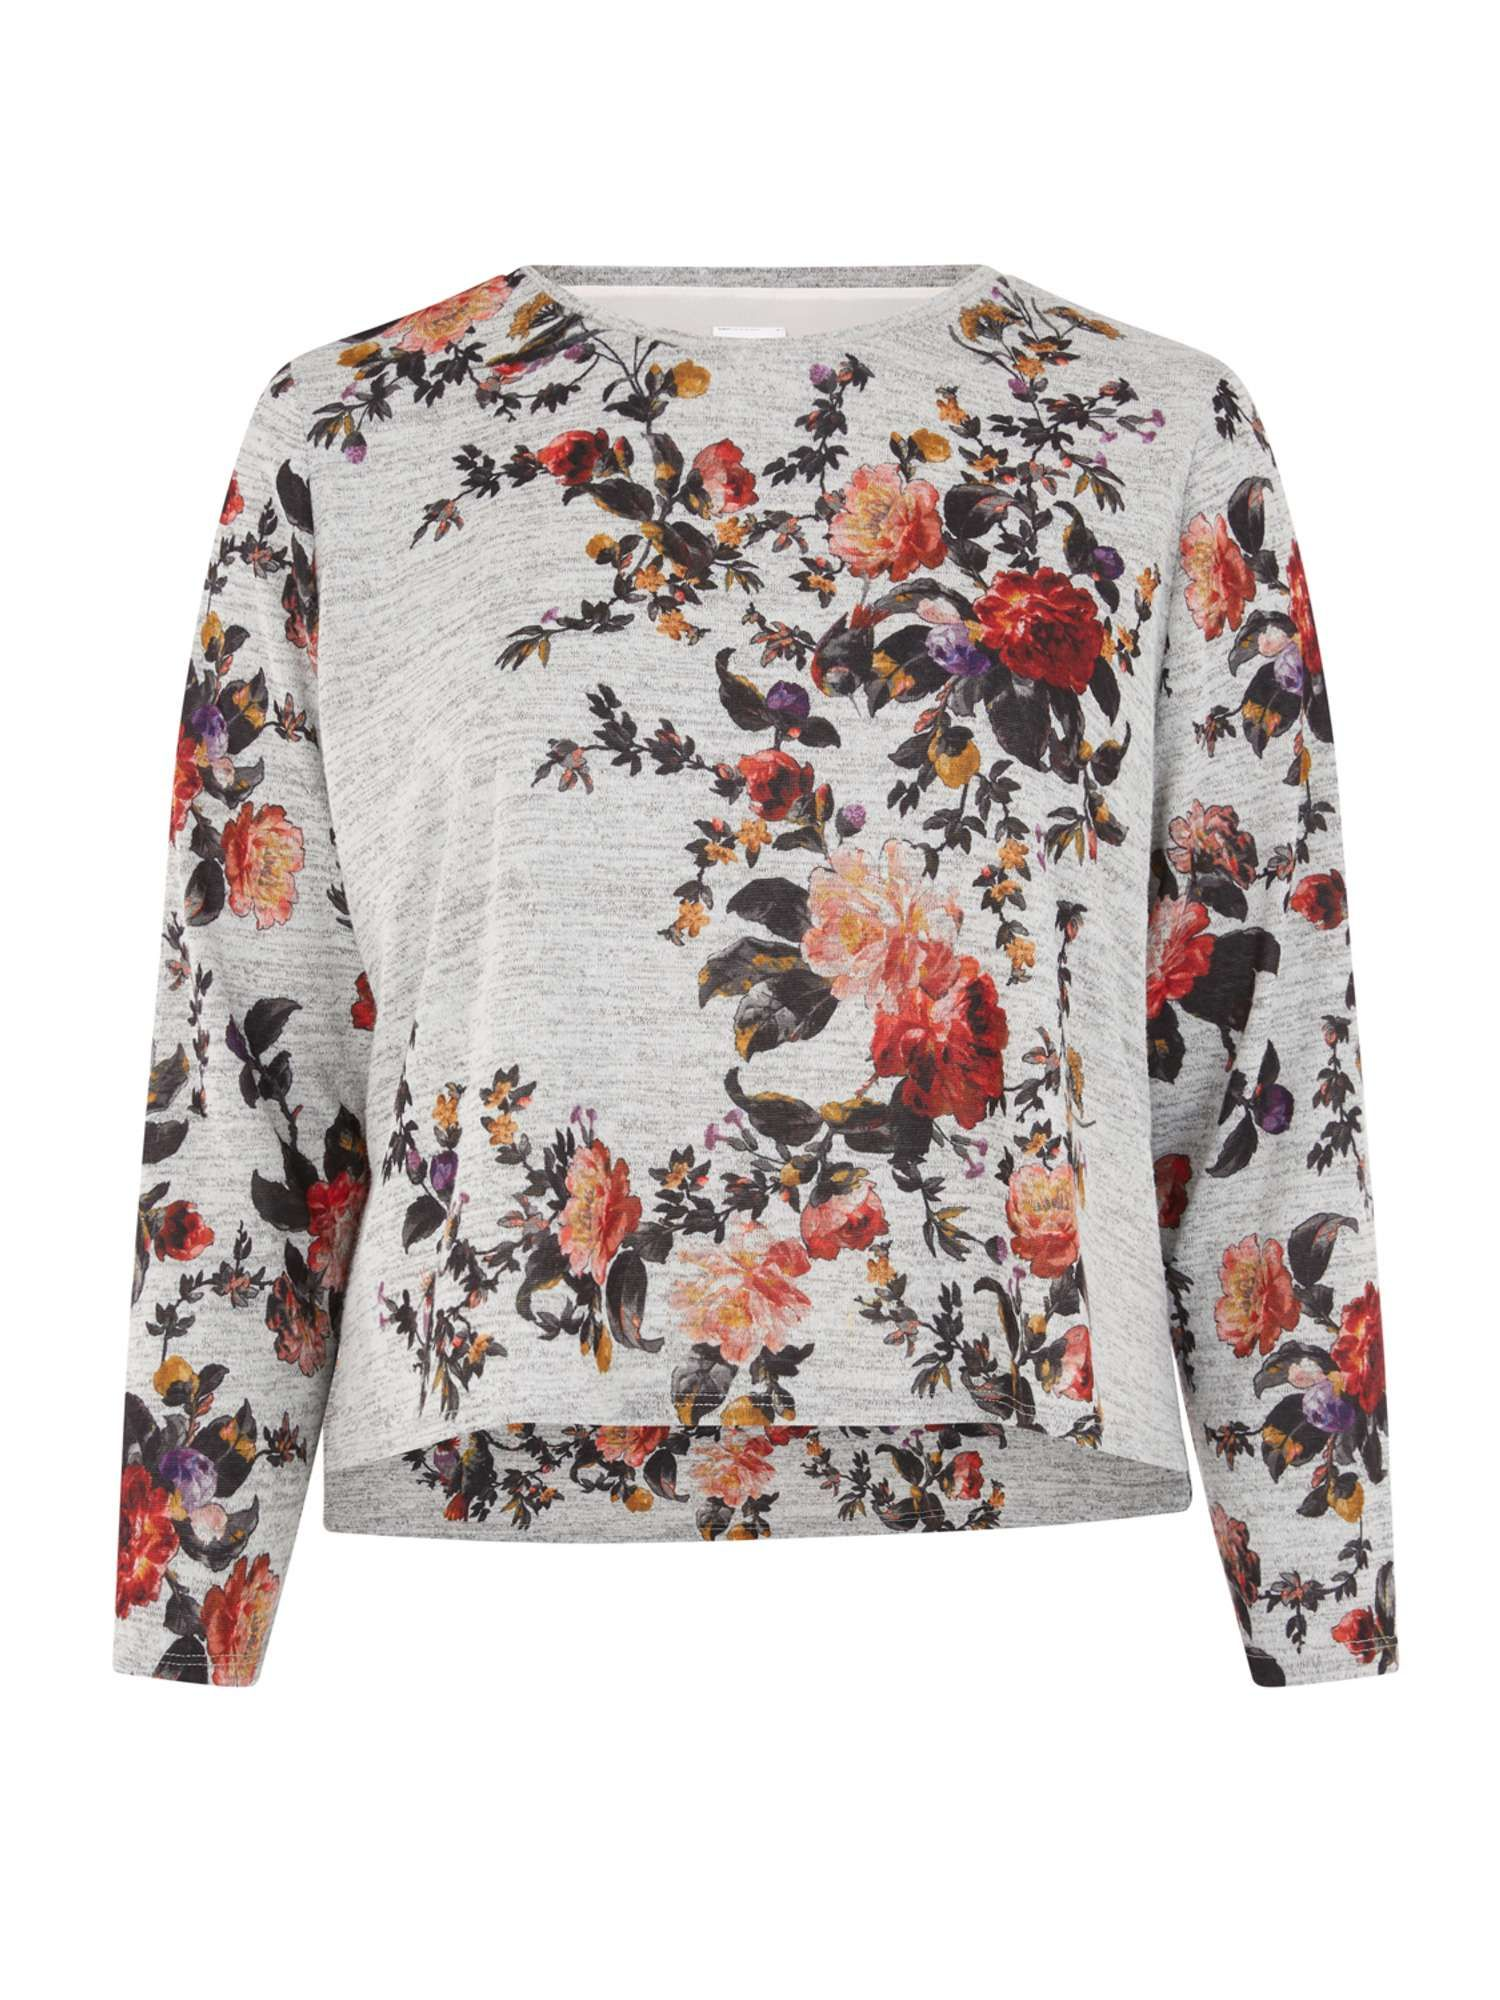 11103118b4 Oasis Curve Autumn Garden Woven Mix Cosy Top - House of Fraser